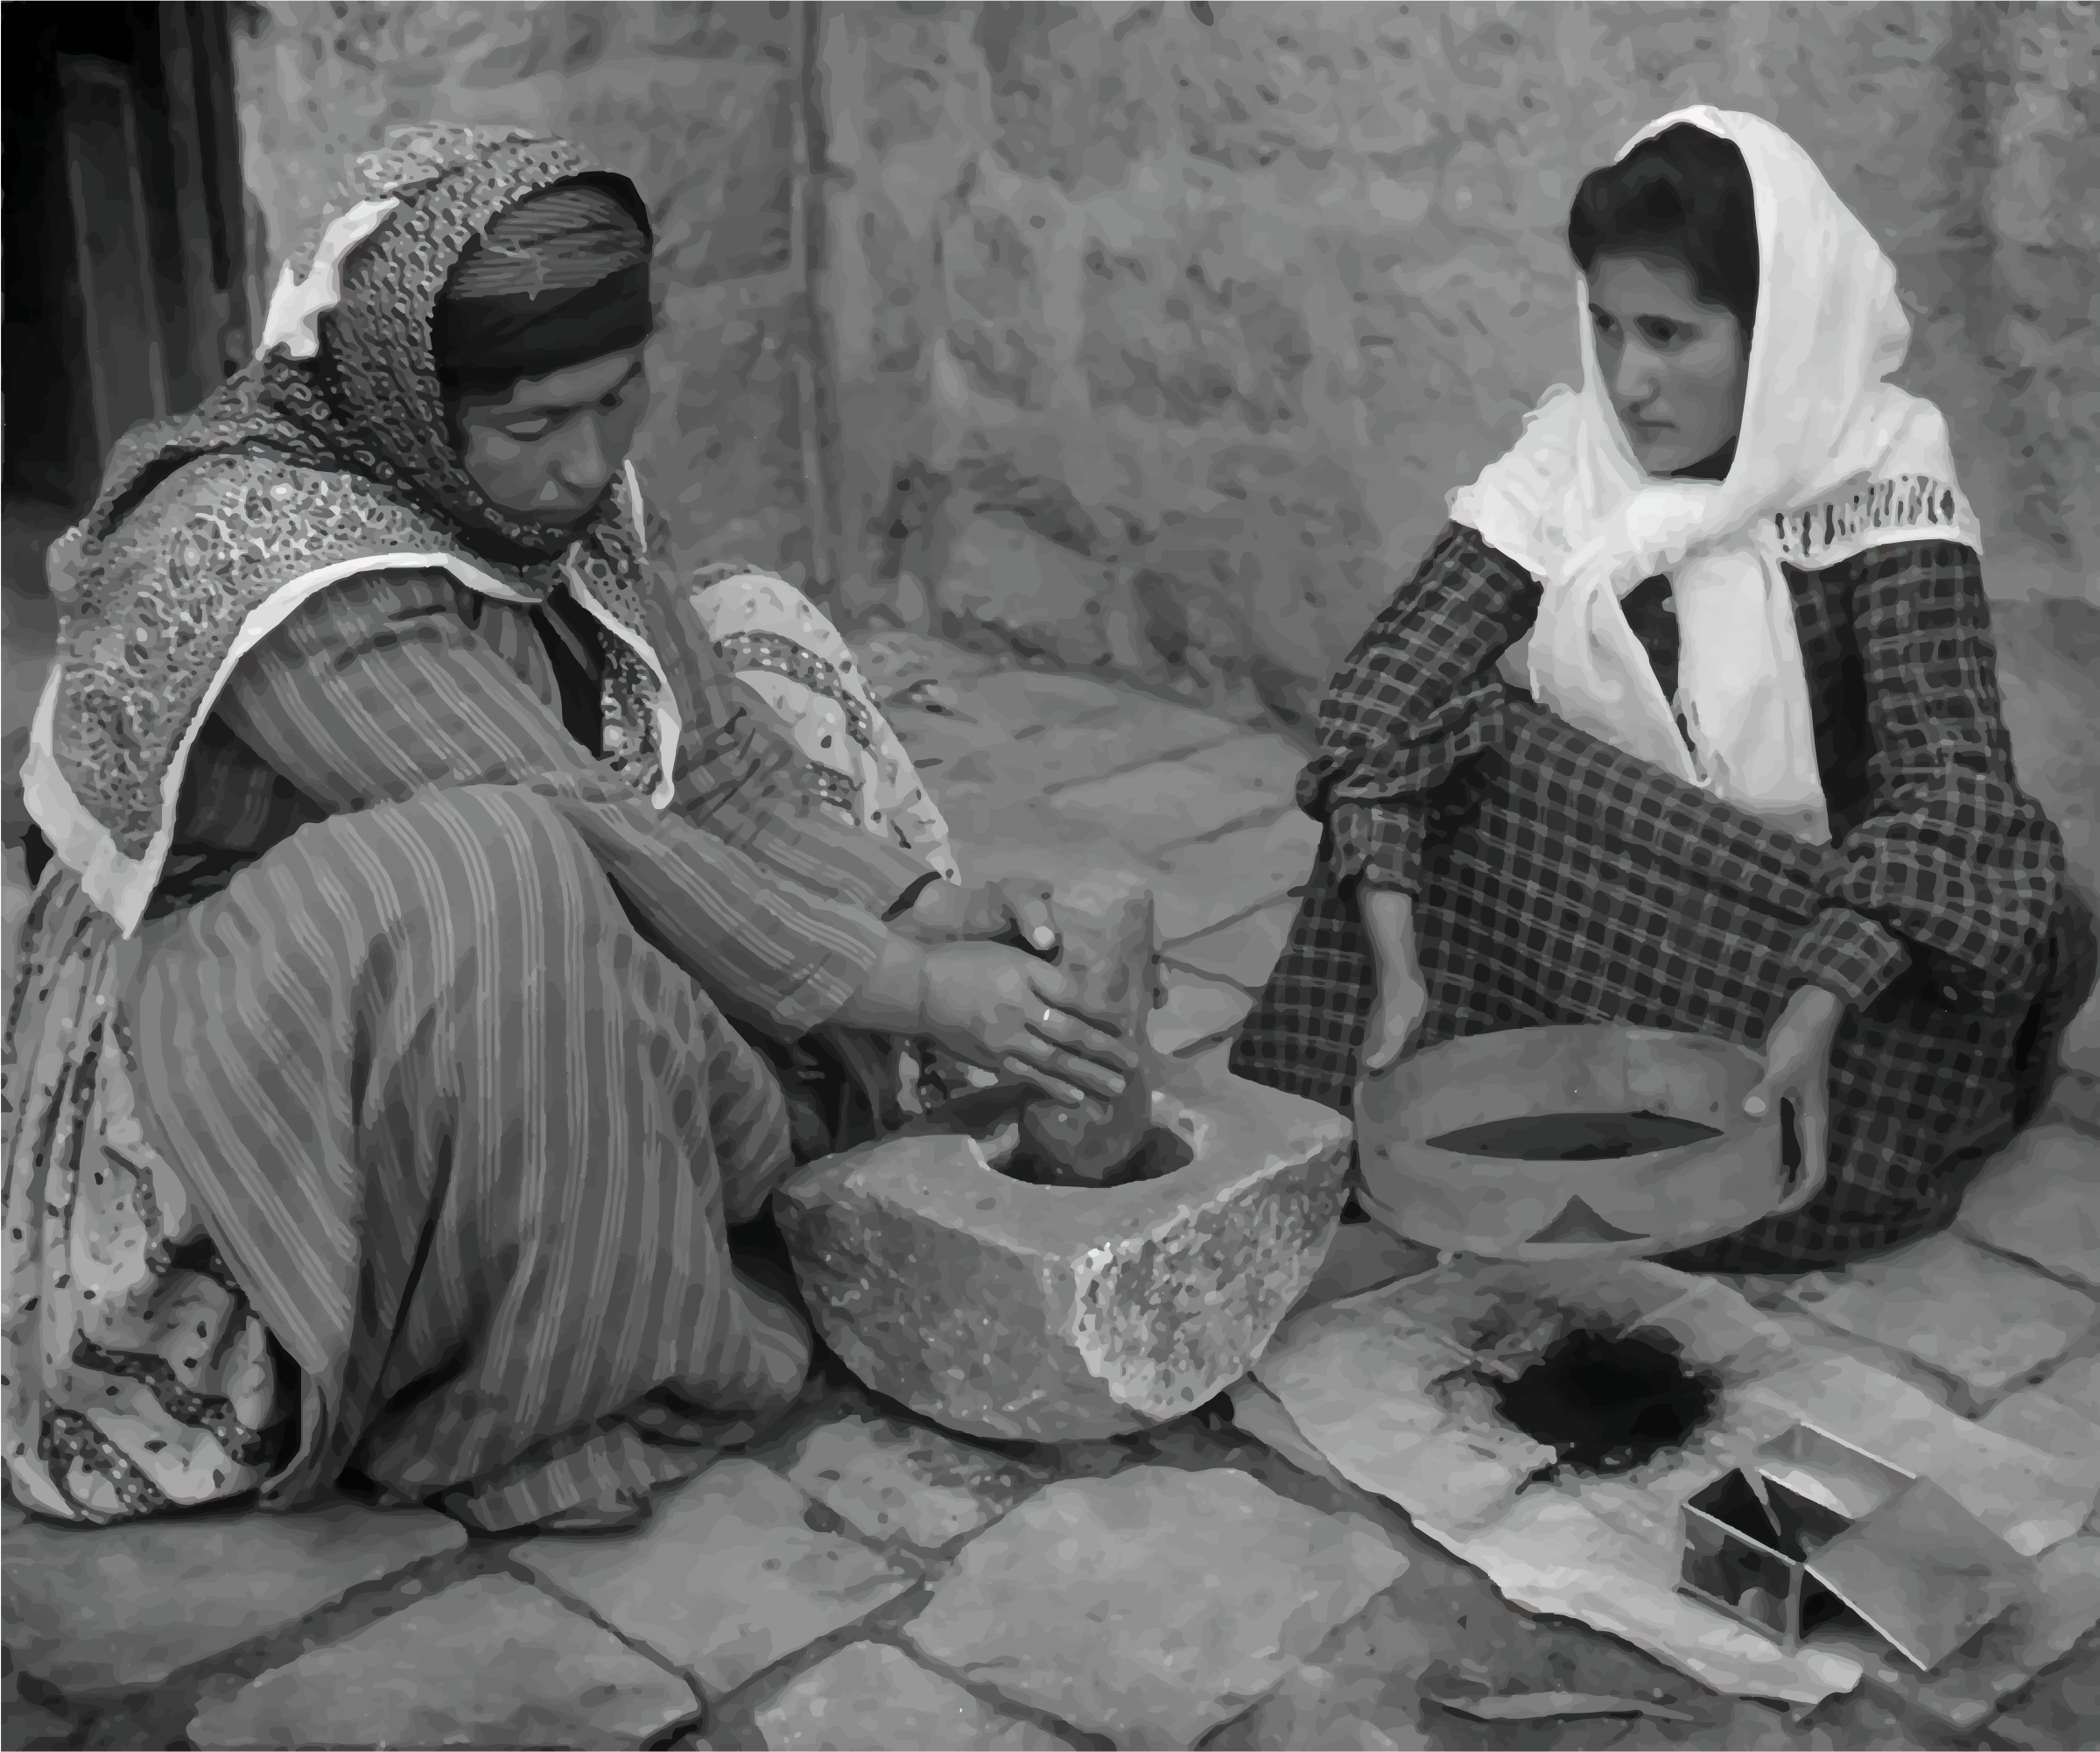 Palestinian Women Grinding Coffee Beans 1905 by GDJ